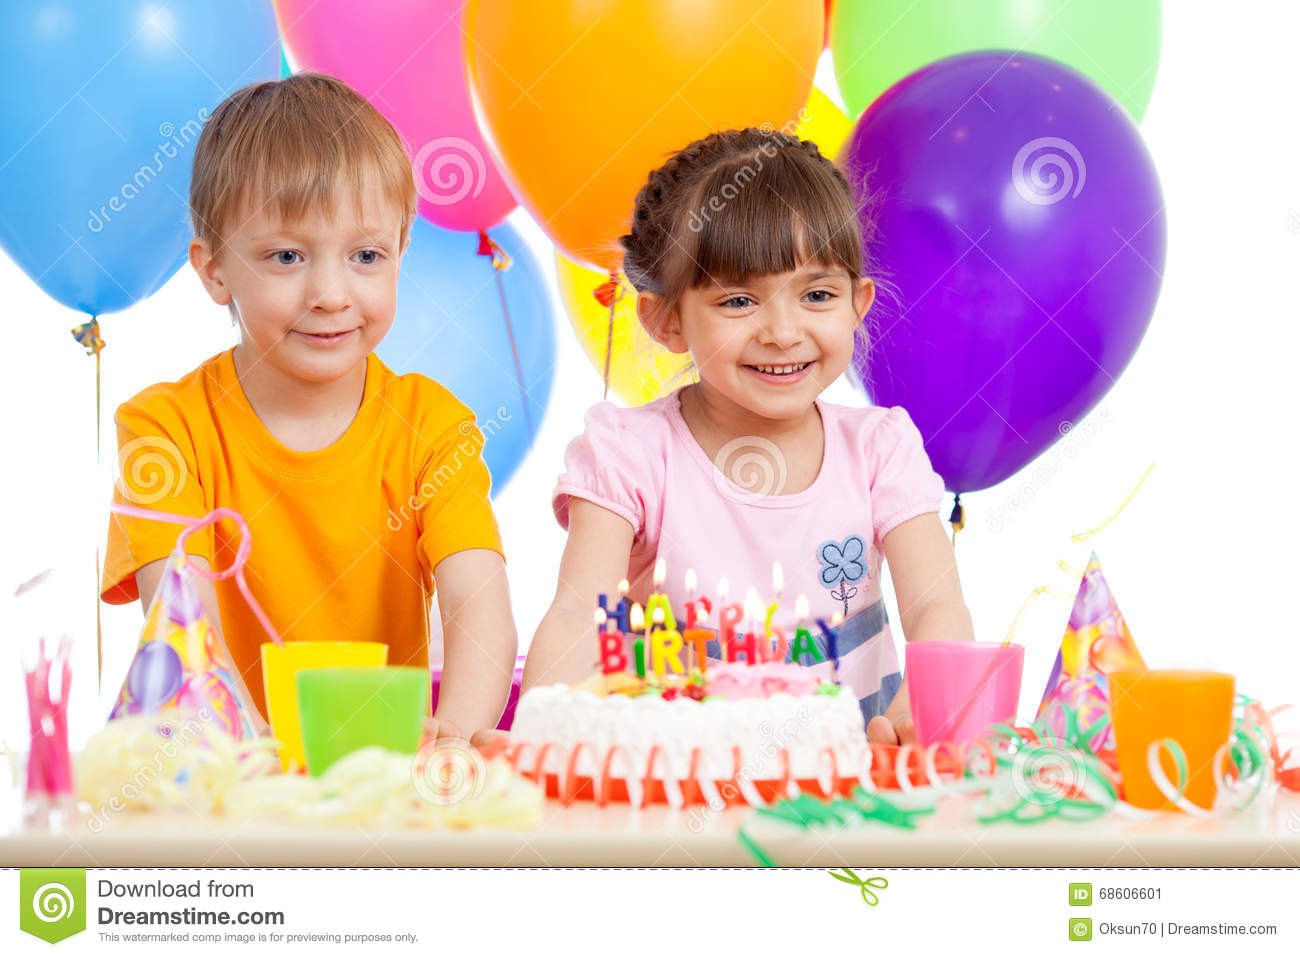 Enjoyable Smiling Little Boy And Girl With Birthday Cake And Color Ballons Personalised Birthday Cards Paralily Jamesorg